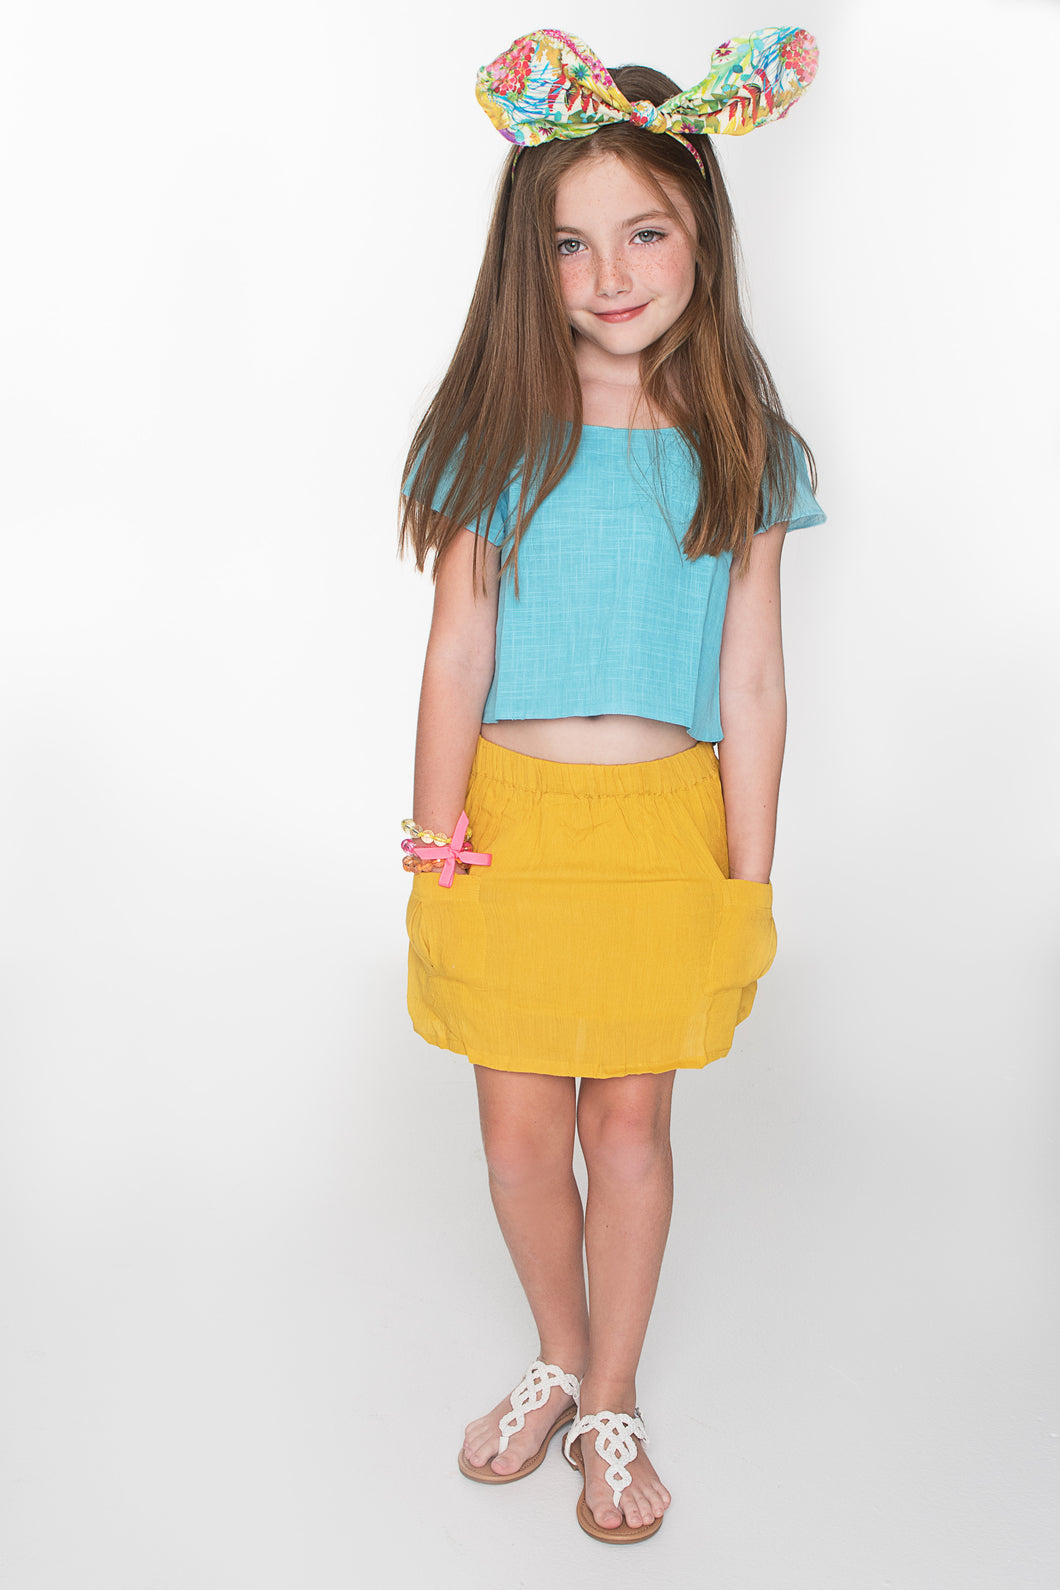 Yellow Blue Skirt and Crop Top 2pc. Set - Kids Wholesale Boutique Clothing, Dress - Girls Dresses, Yo Baby Wholesale - Yo Baby